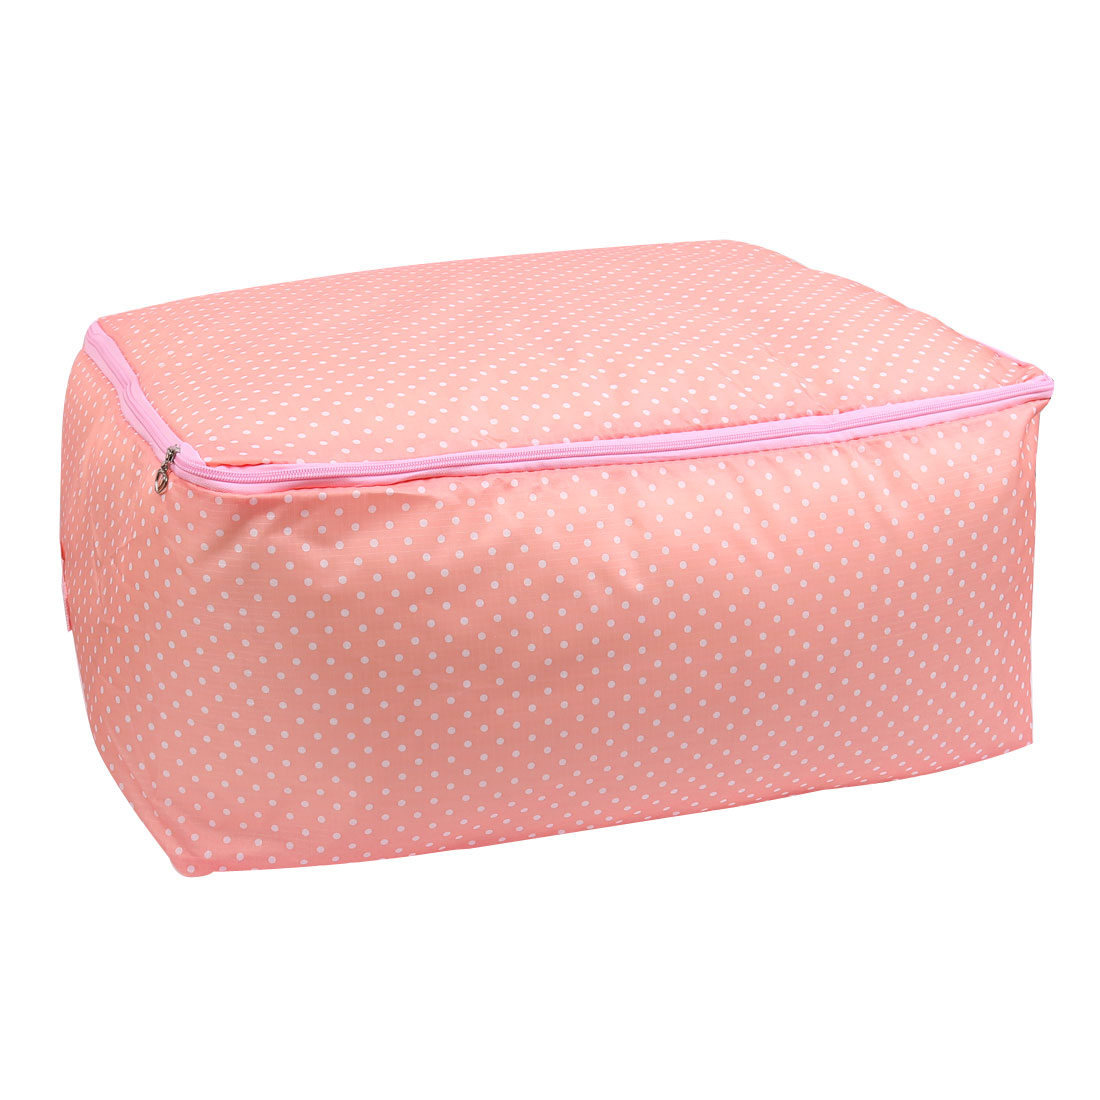 Oxford Cloth Dots Pattern Clothes Quilt Blanket Storage Bag Organizer Coral Pink